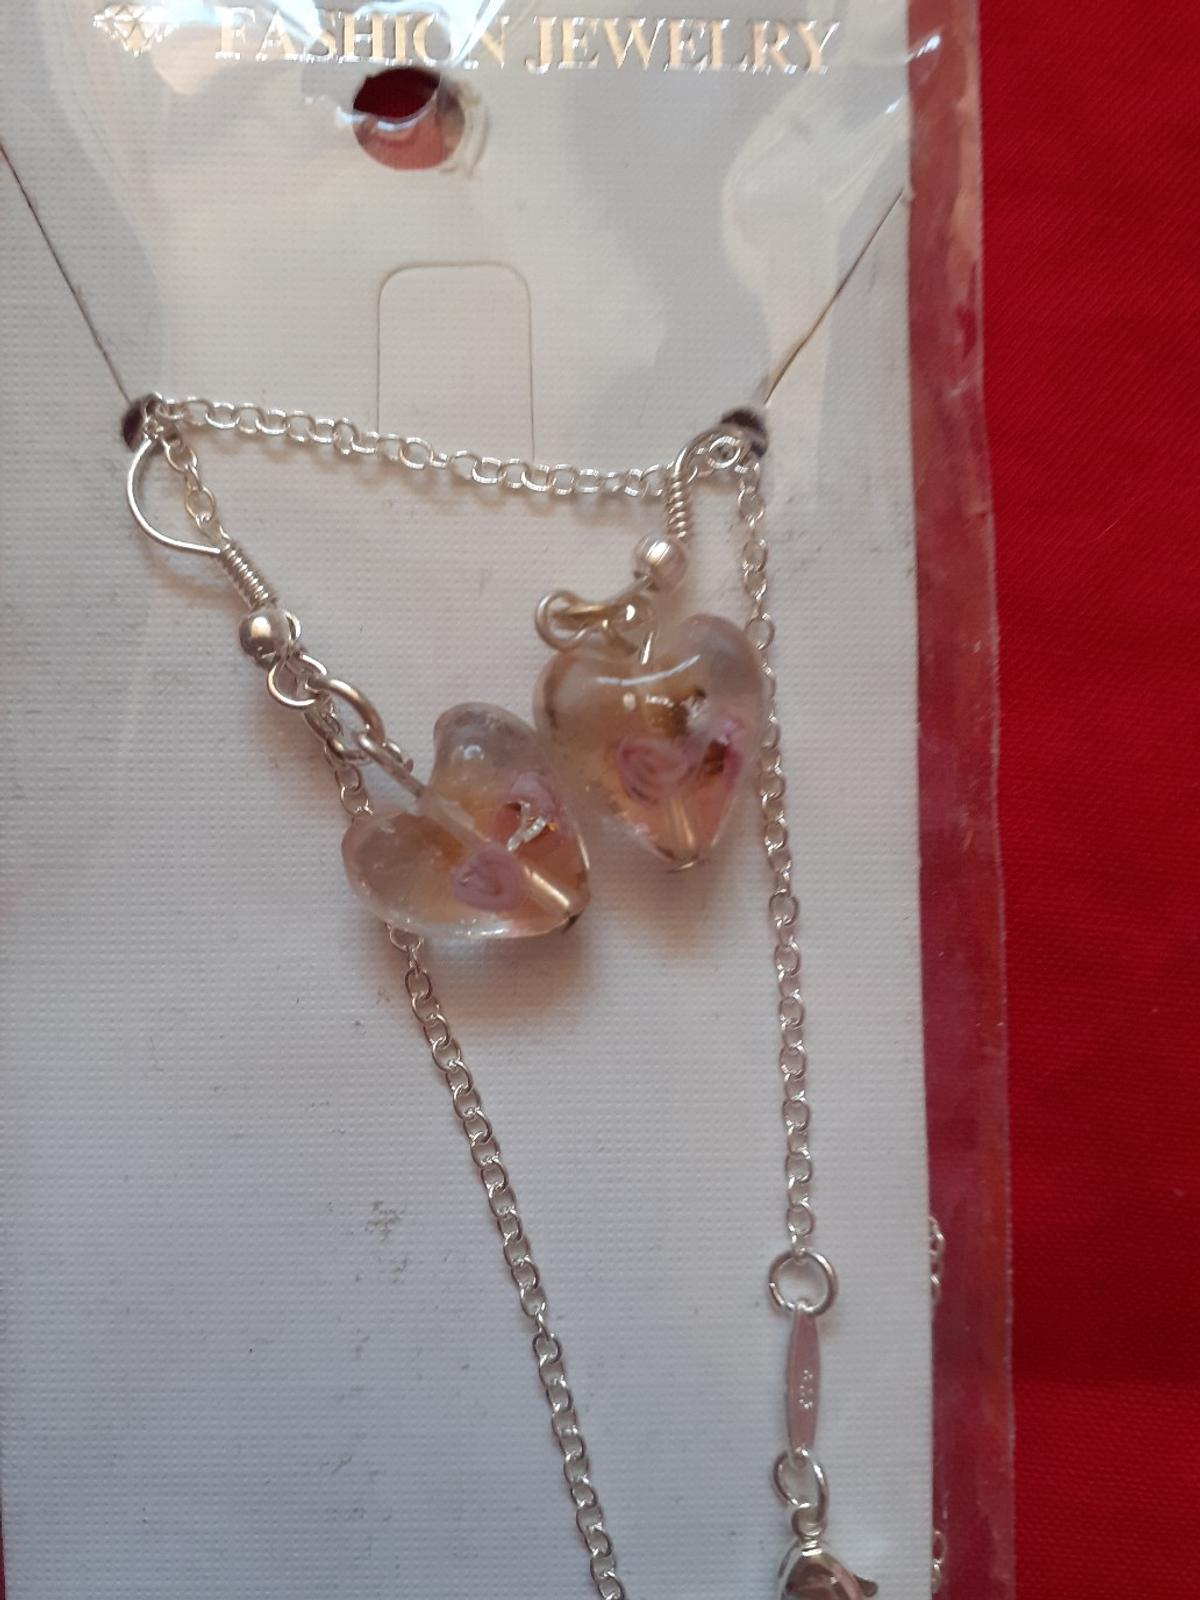 2 necklace & ear ring sets,  one pink & one lilac NEVER BEEN WORN - IDEAL GIFT £5 PER SET  FROM SMOKE & PET FREE HOME